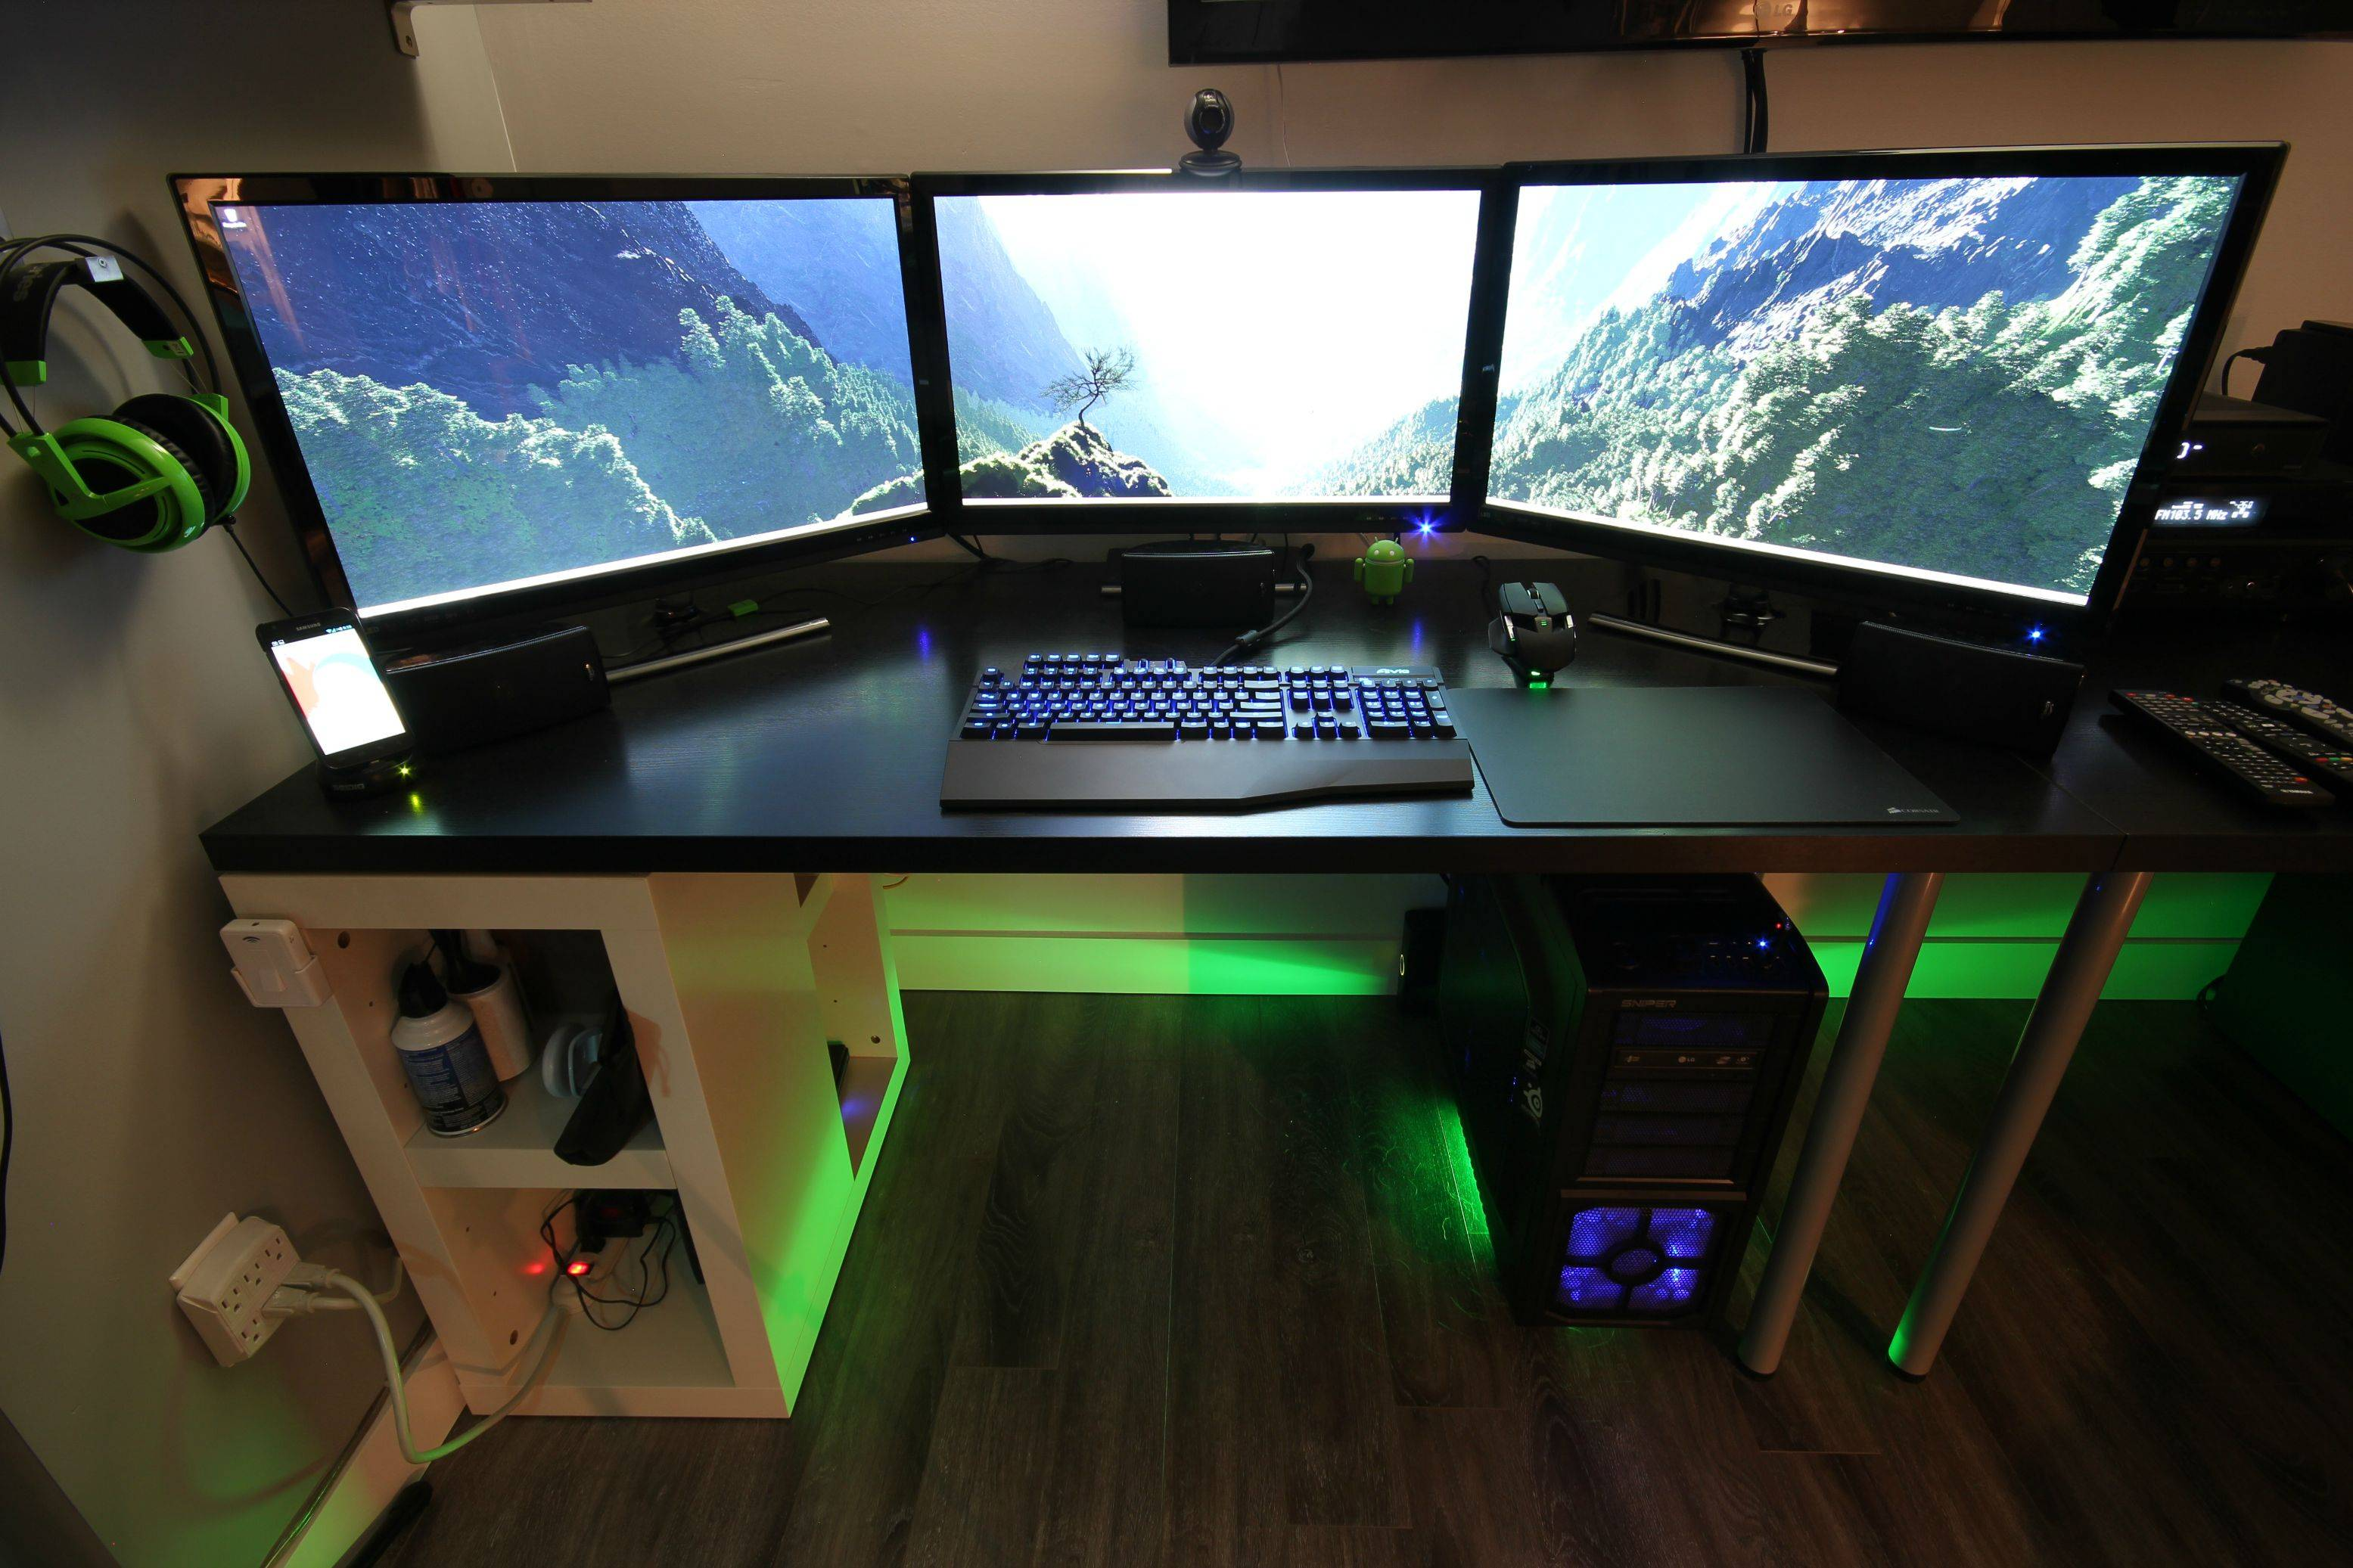 astonishing electronic best bedroom setup   Steps to Building an Awesome Gaming Setup ...